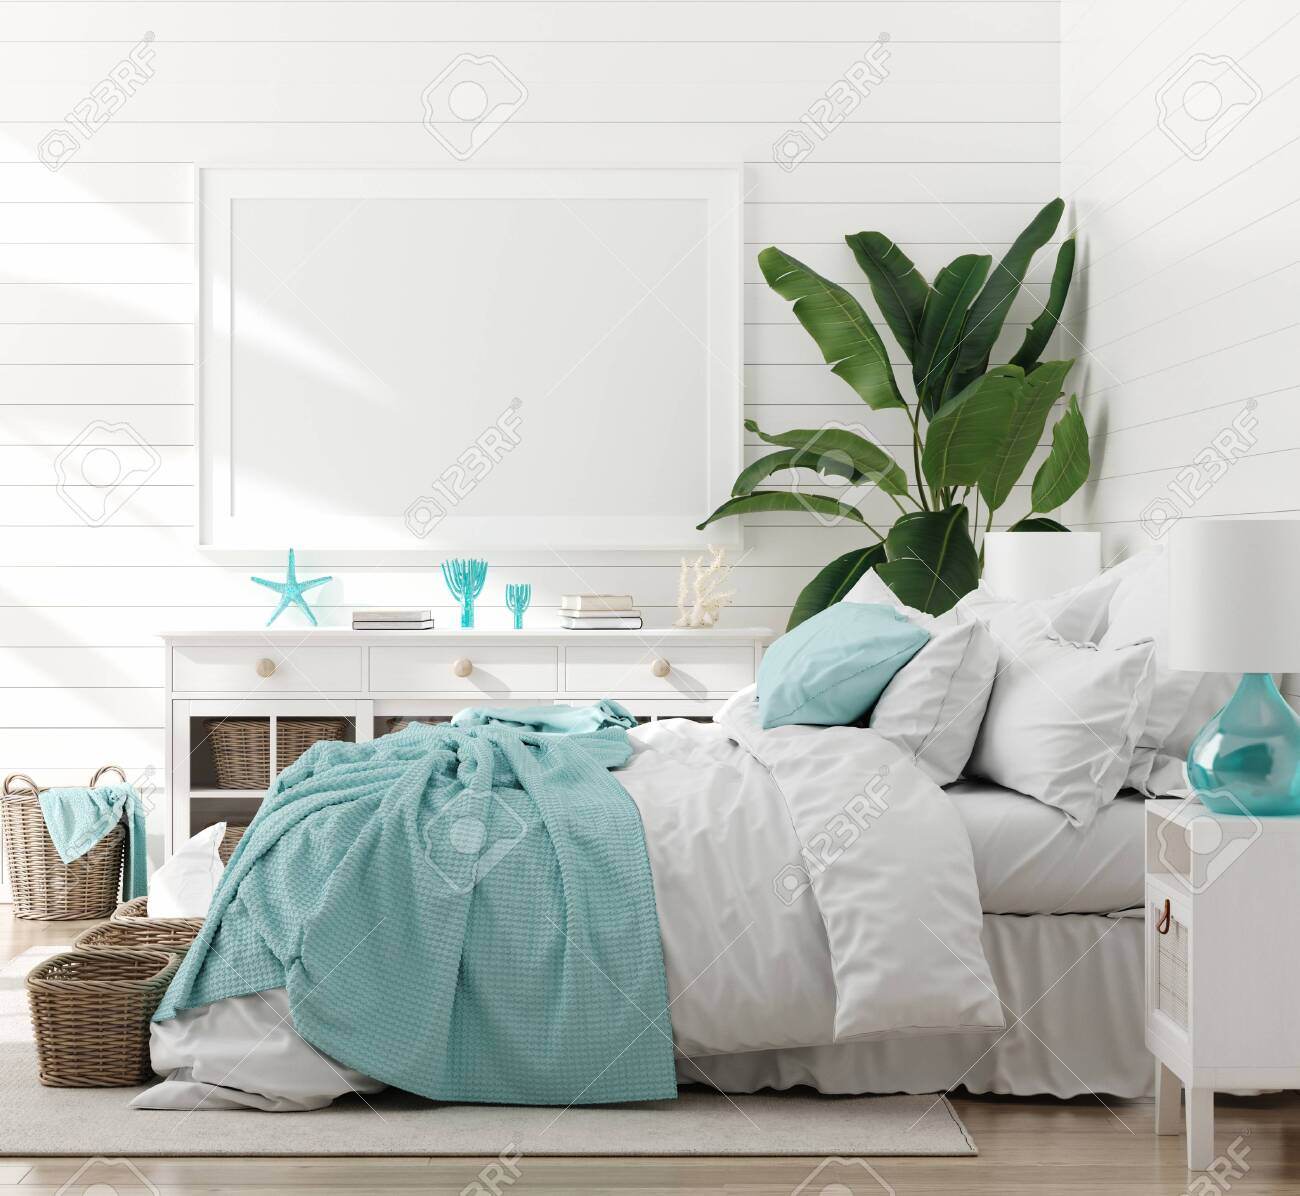 Mock up frame in bedroom interior, marine room with sea decor and furniture, Coastal style, 3d render - 124697988